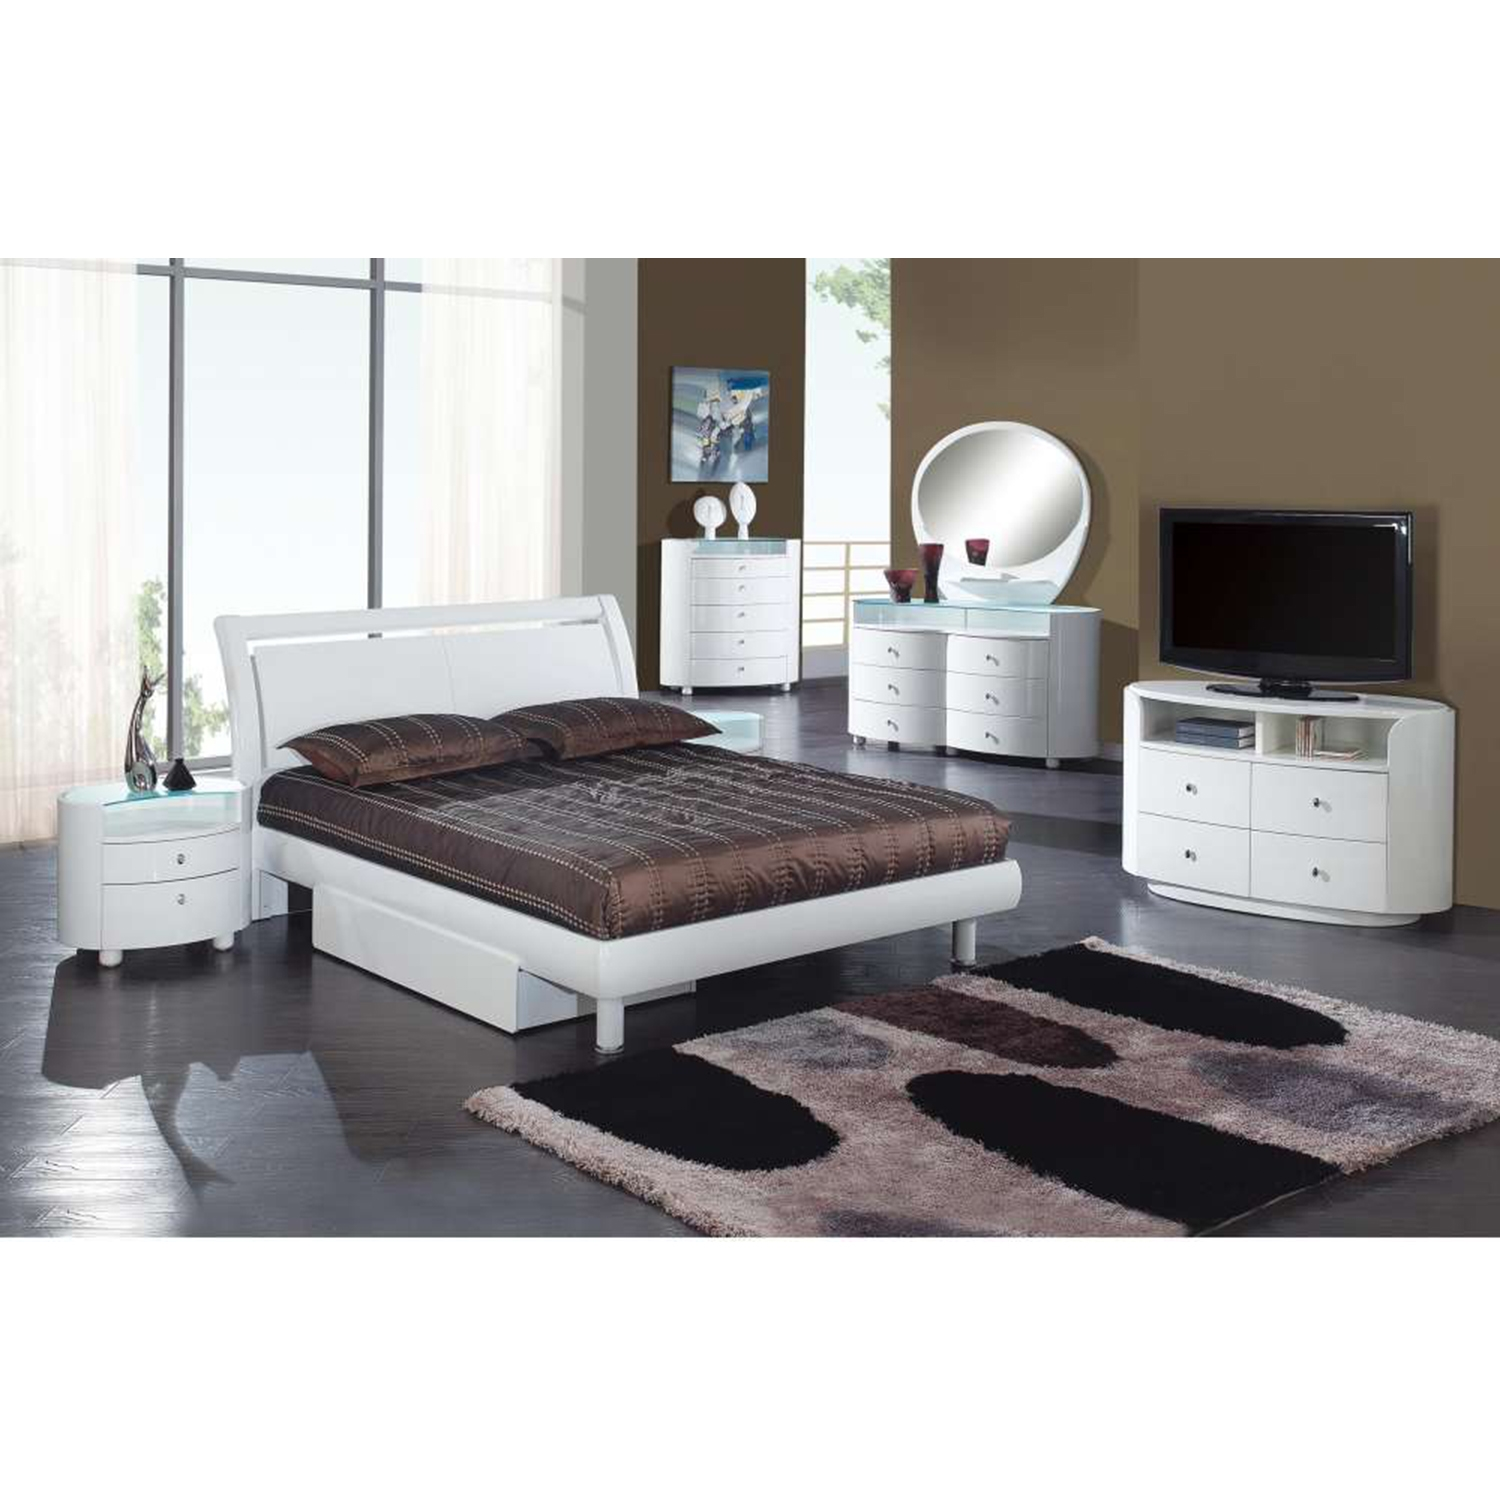 Emily Bed in White - GLO-EMILY-B86-WH-BED